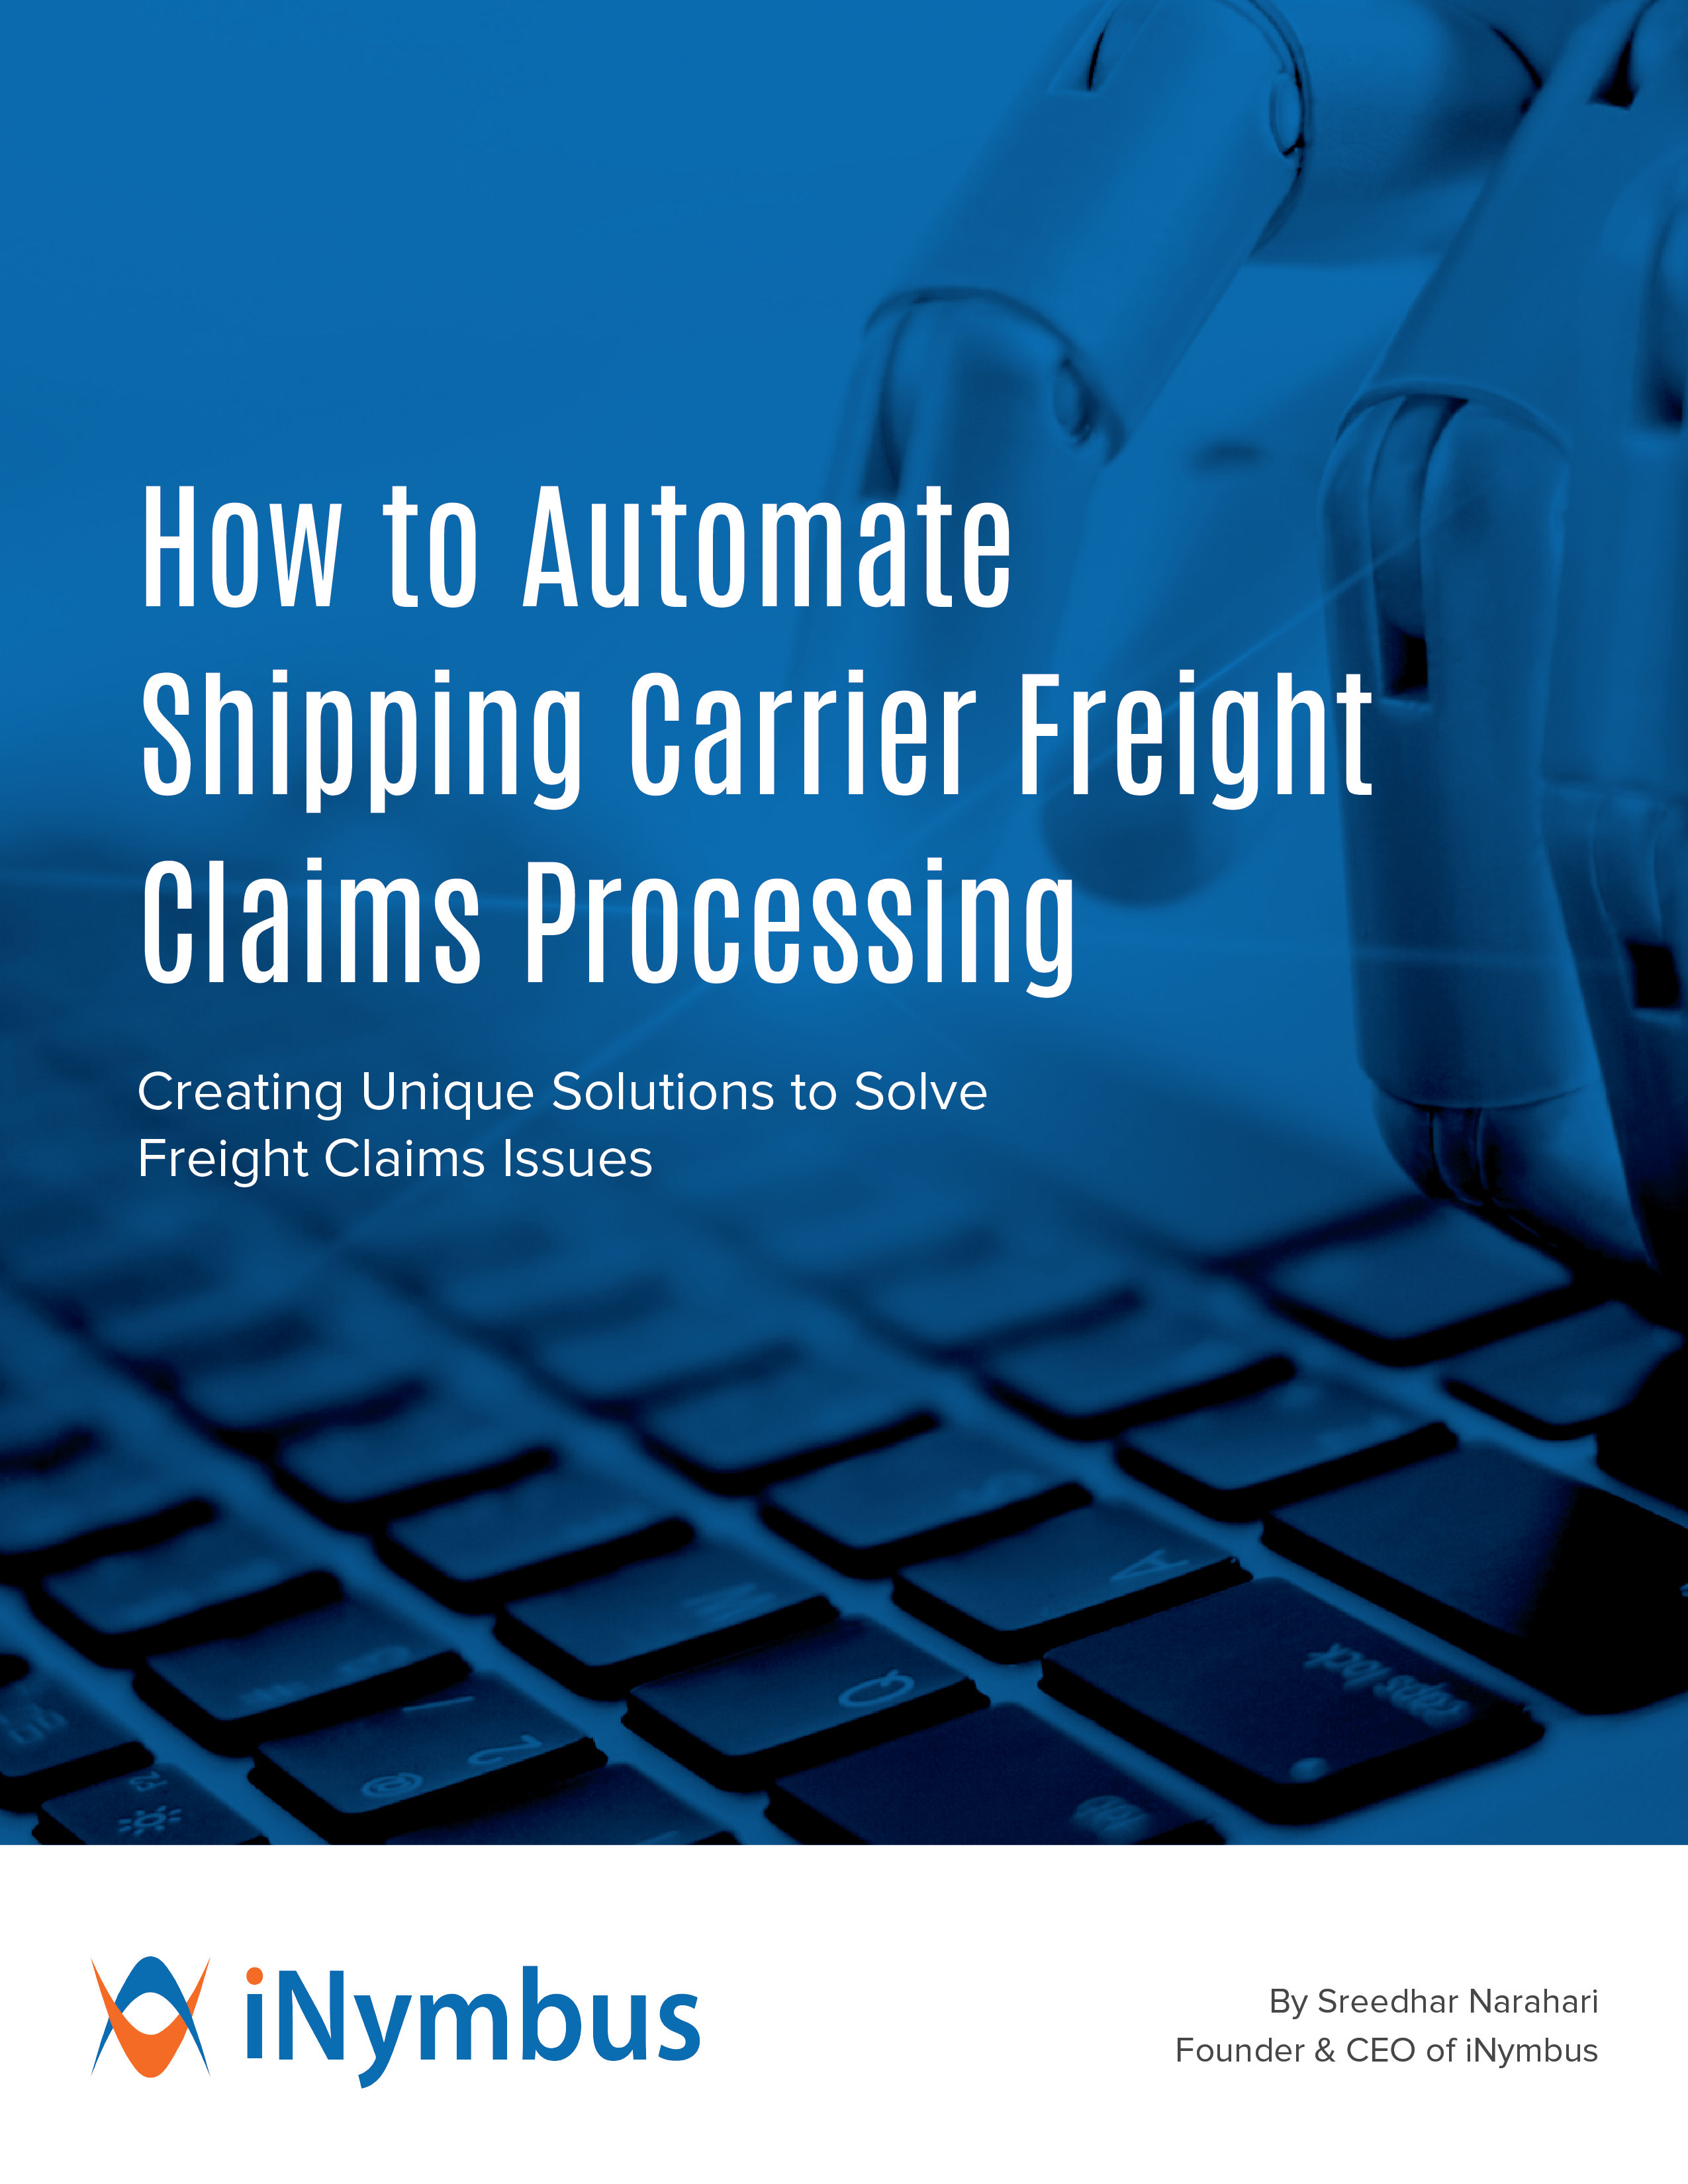 How to Automate Shipping Carrier Freight Claims Processing